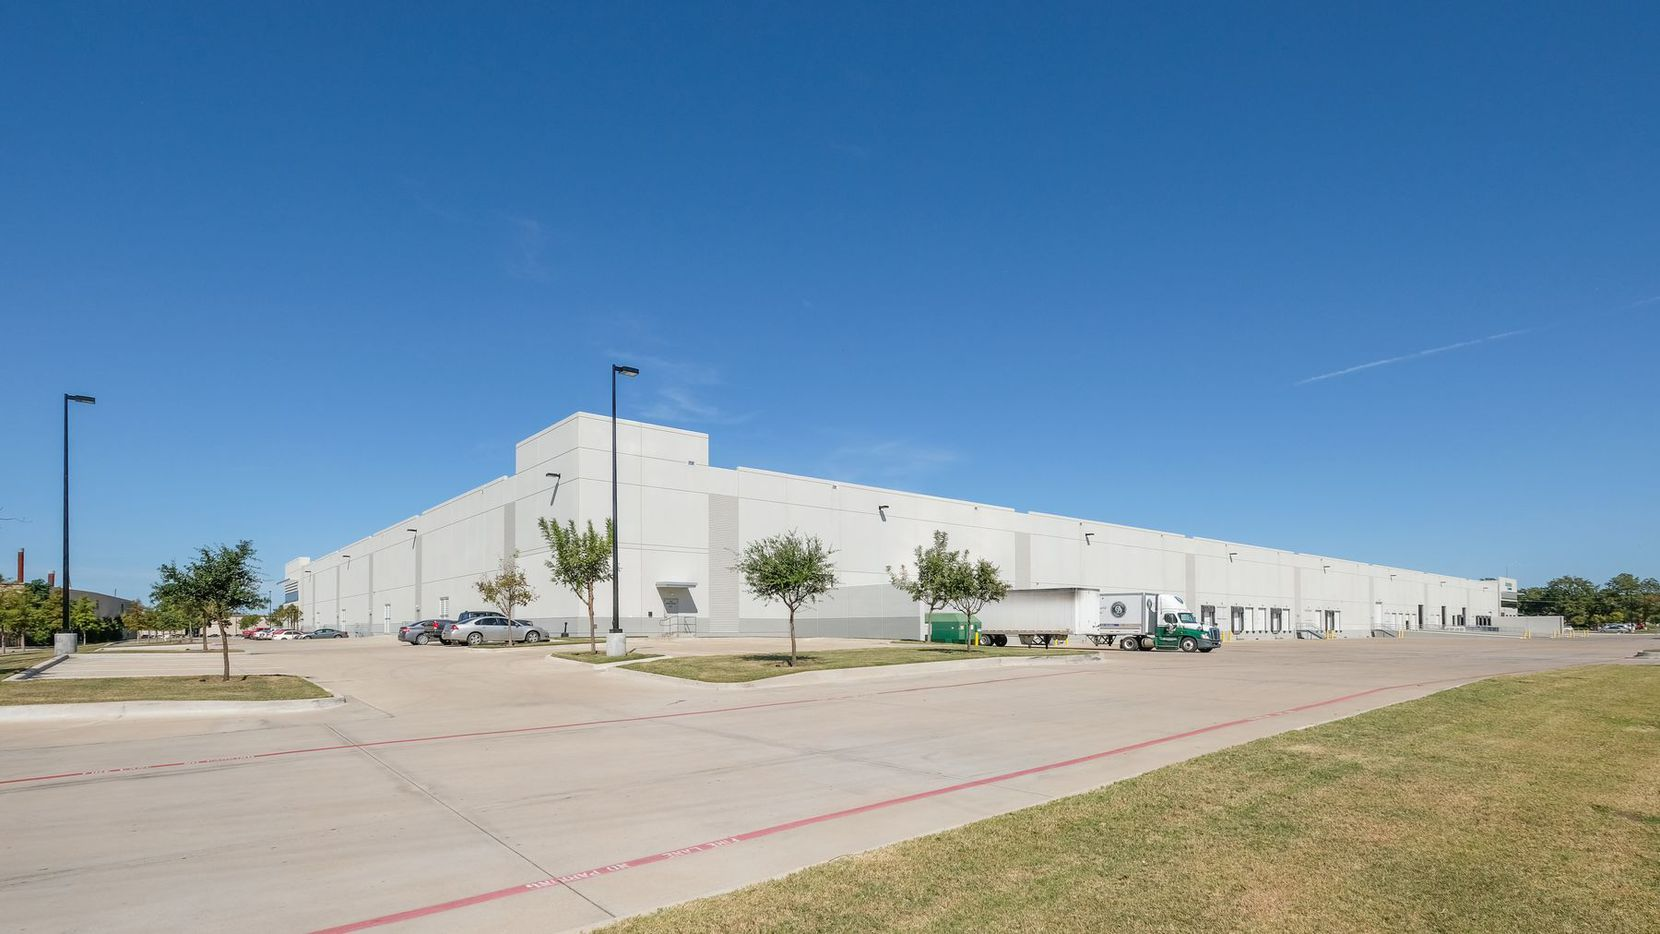 The new fulfillment center is in the Prologis Park 35 business park.